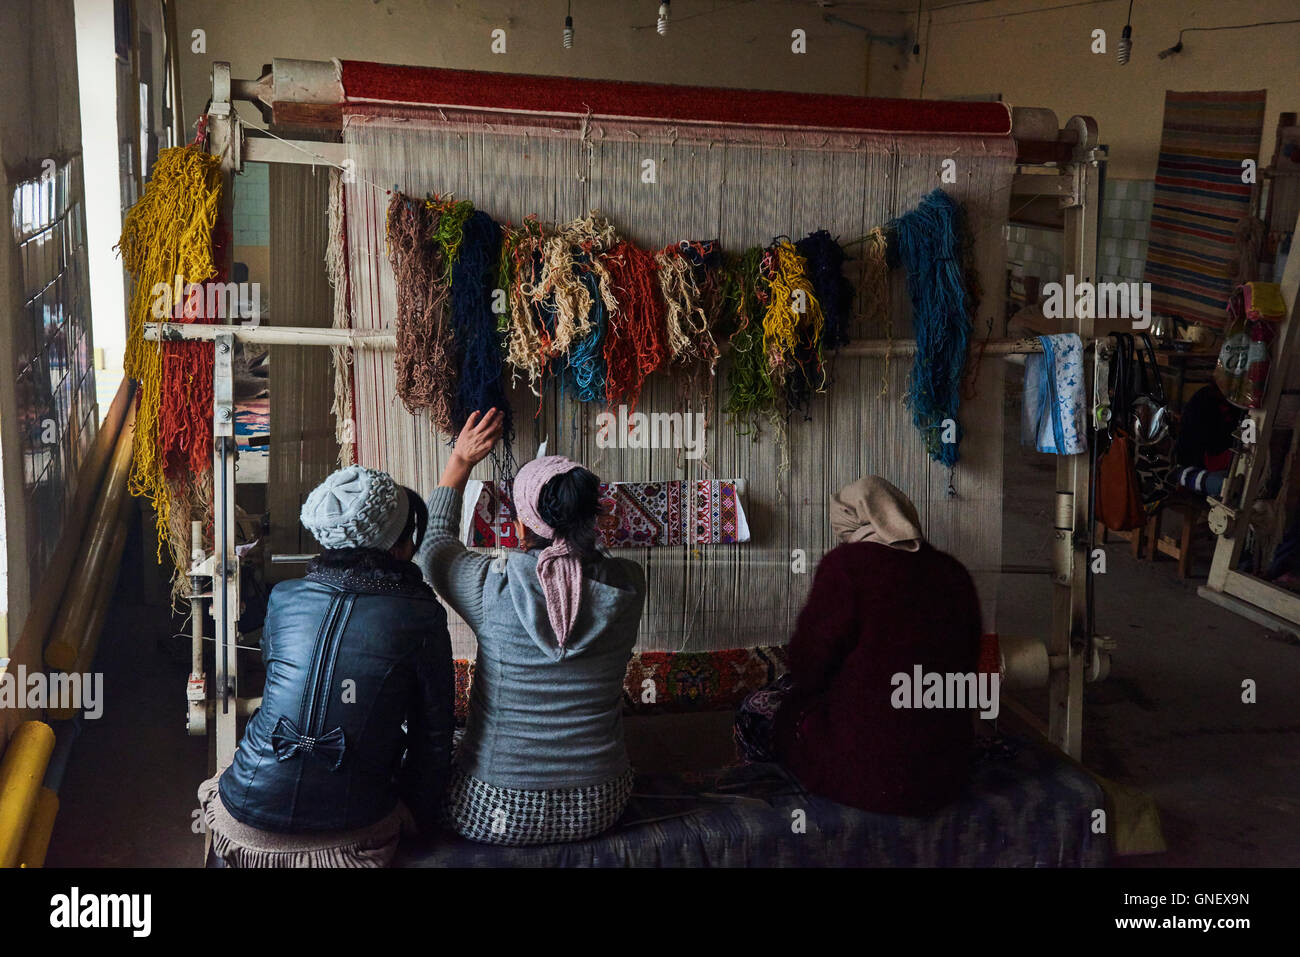 Uzbekistan, Fergana region, Marguilan, wool carpet workshop Stock Photo